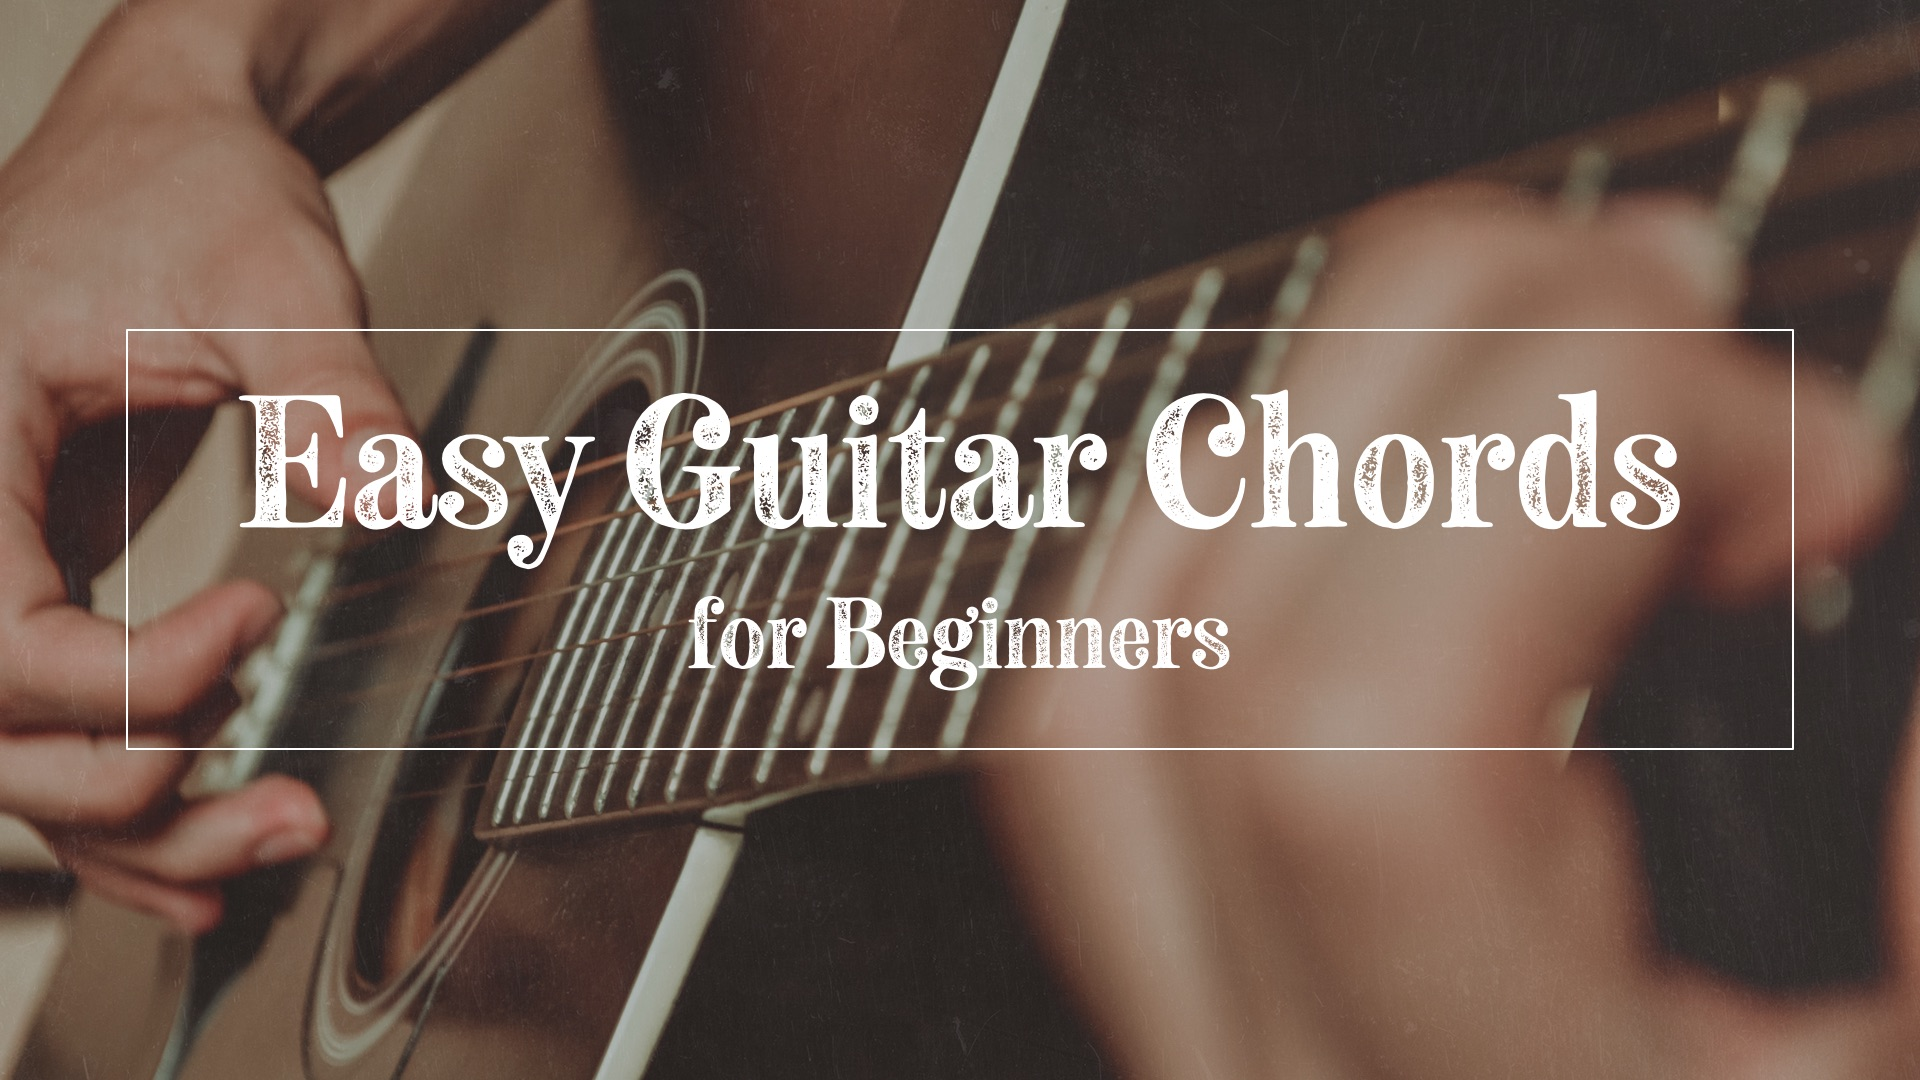 Easy guitar chords for beginners hero